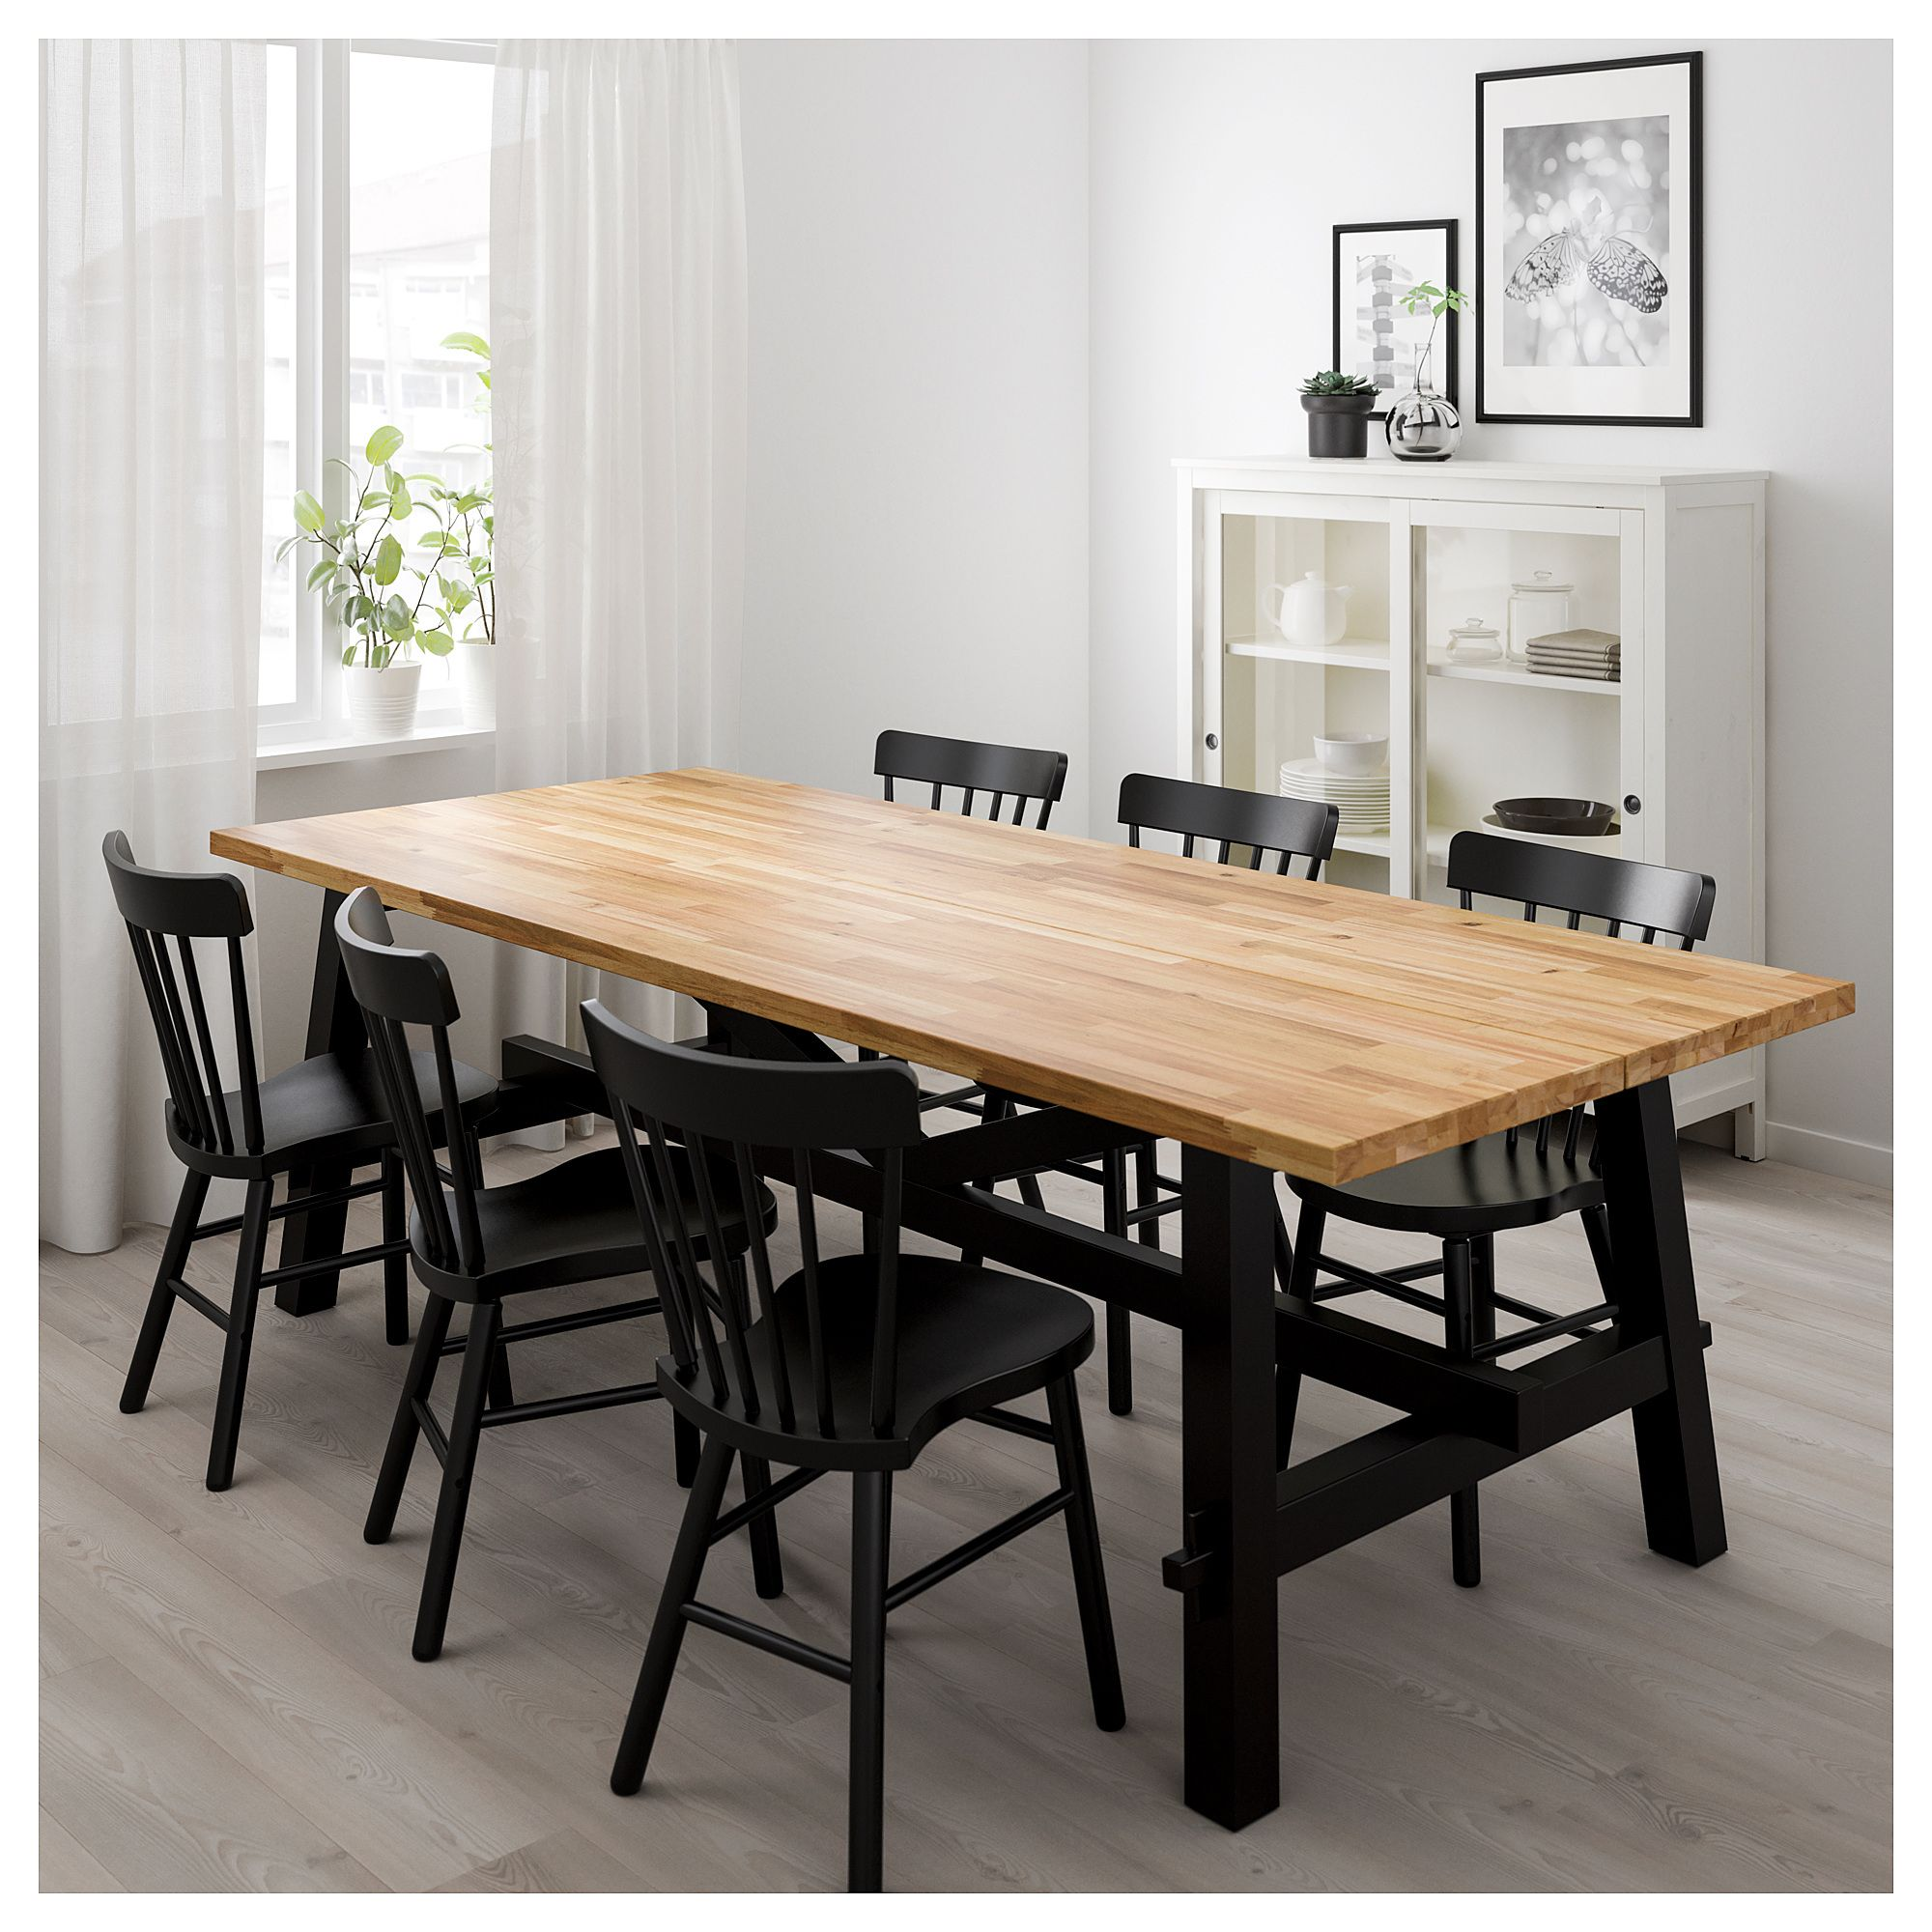 Furniture and Home Furnishings Ikea dining table, Ikea